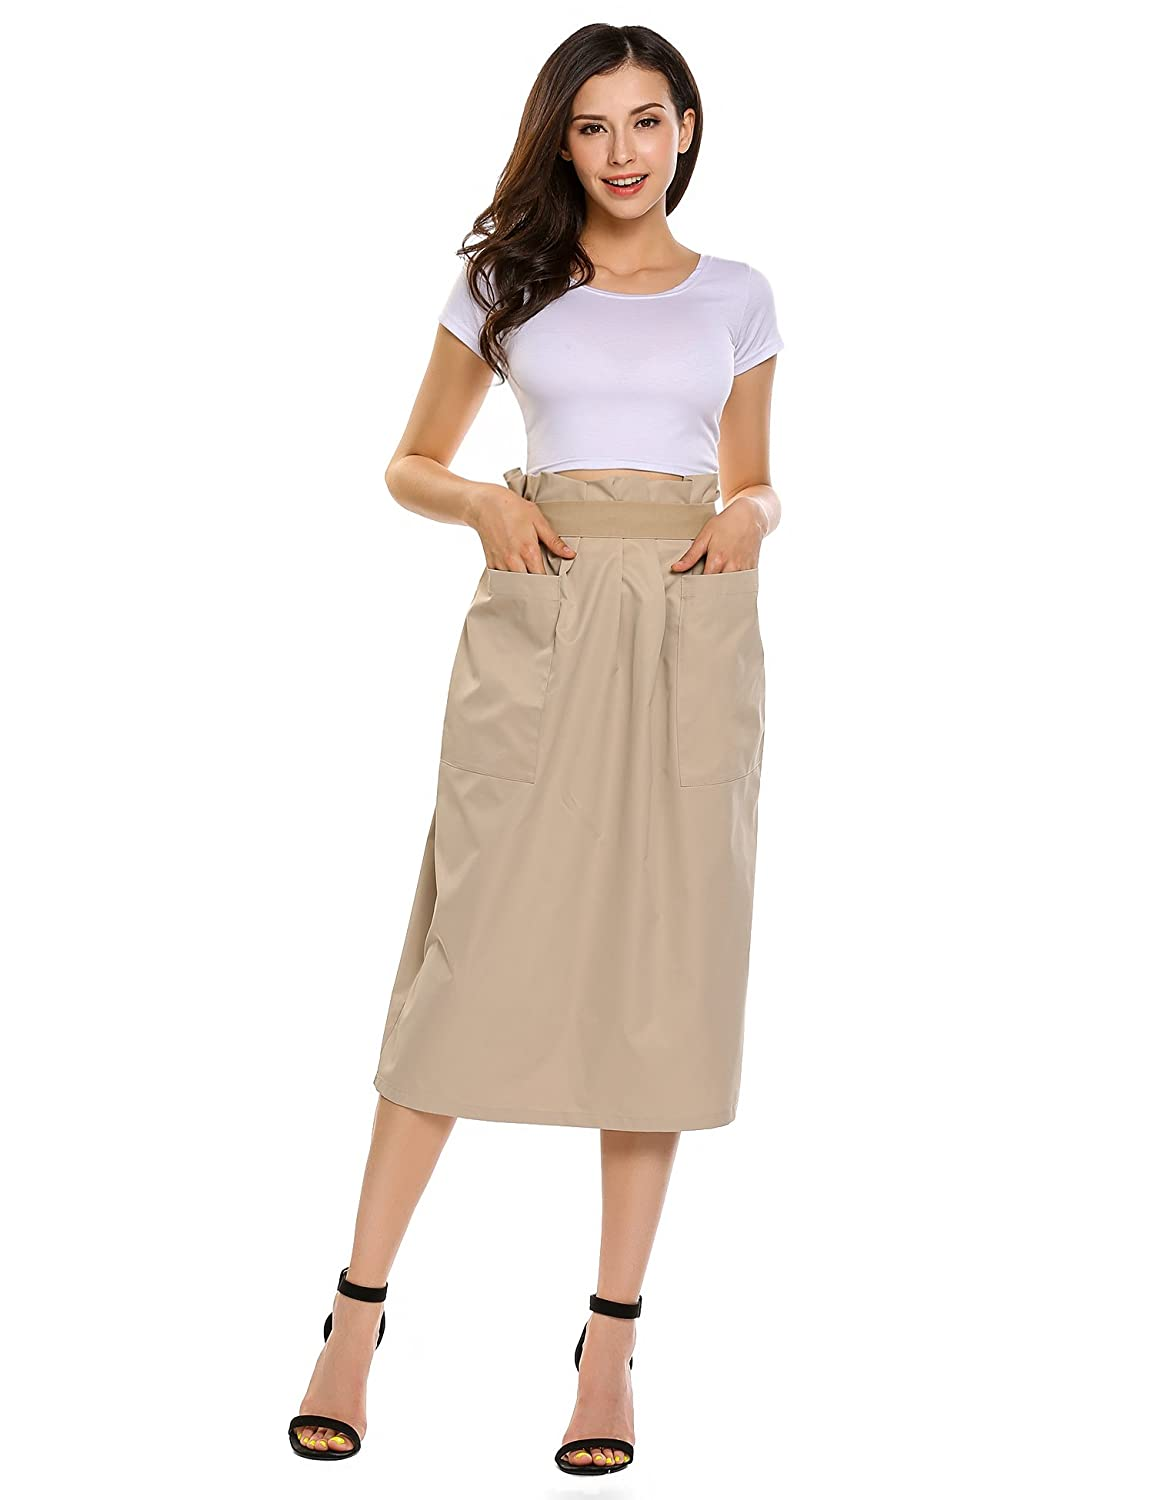 bbc10c1b094e Zeagoo Women's High Waist Stretch Pleated Casual Maxi Skirts Long Skirts  with Pocket at Amazon Women's Clothing store: